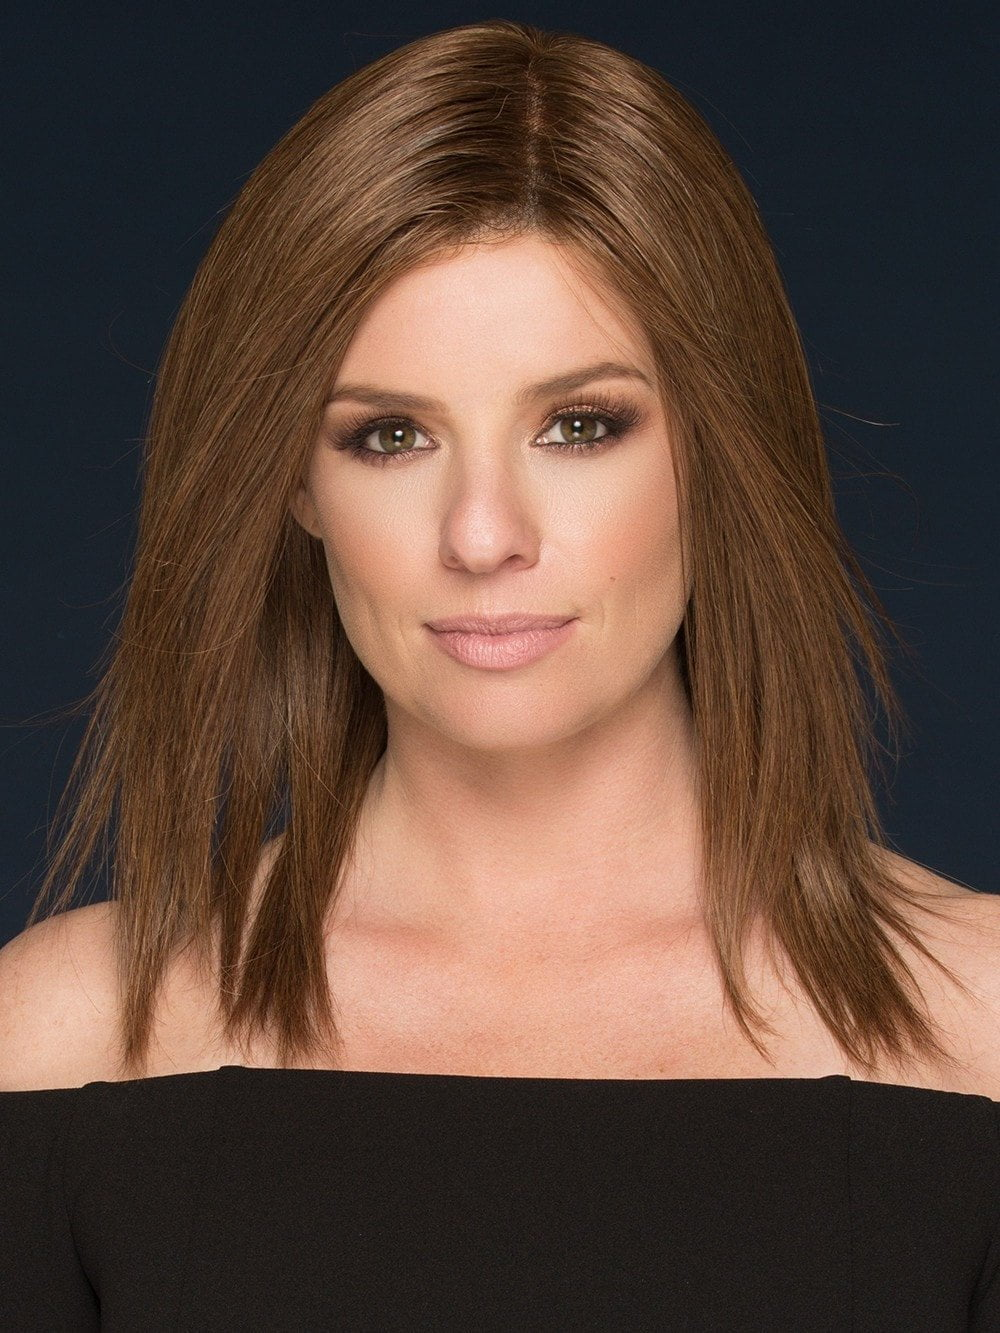 This mid-length human hair wig is changeable and realistic with its sleek texture and monofilament top